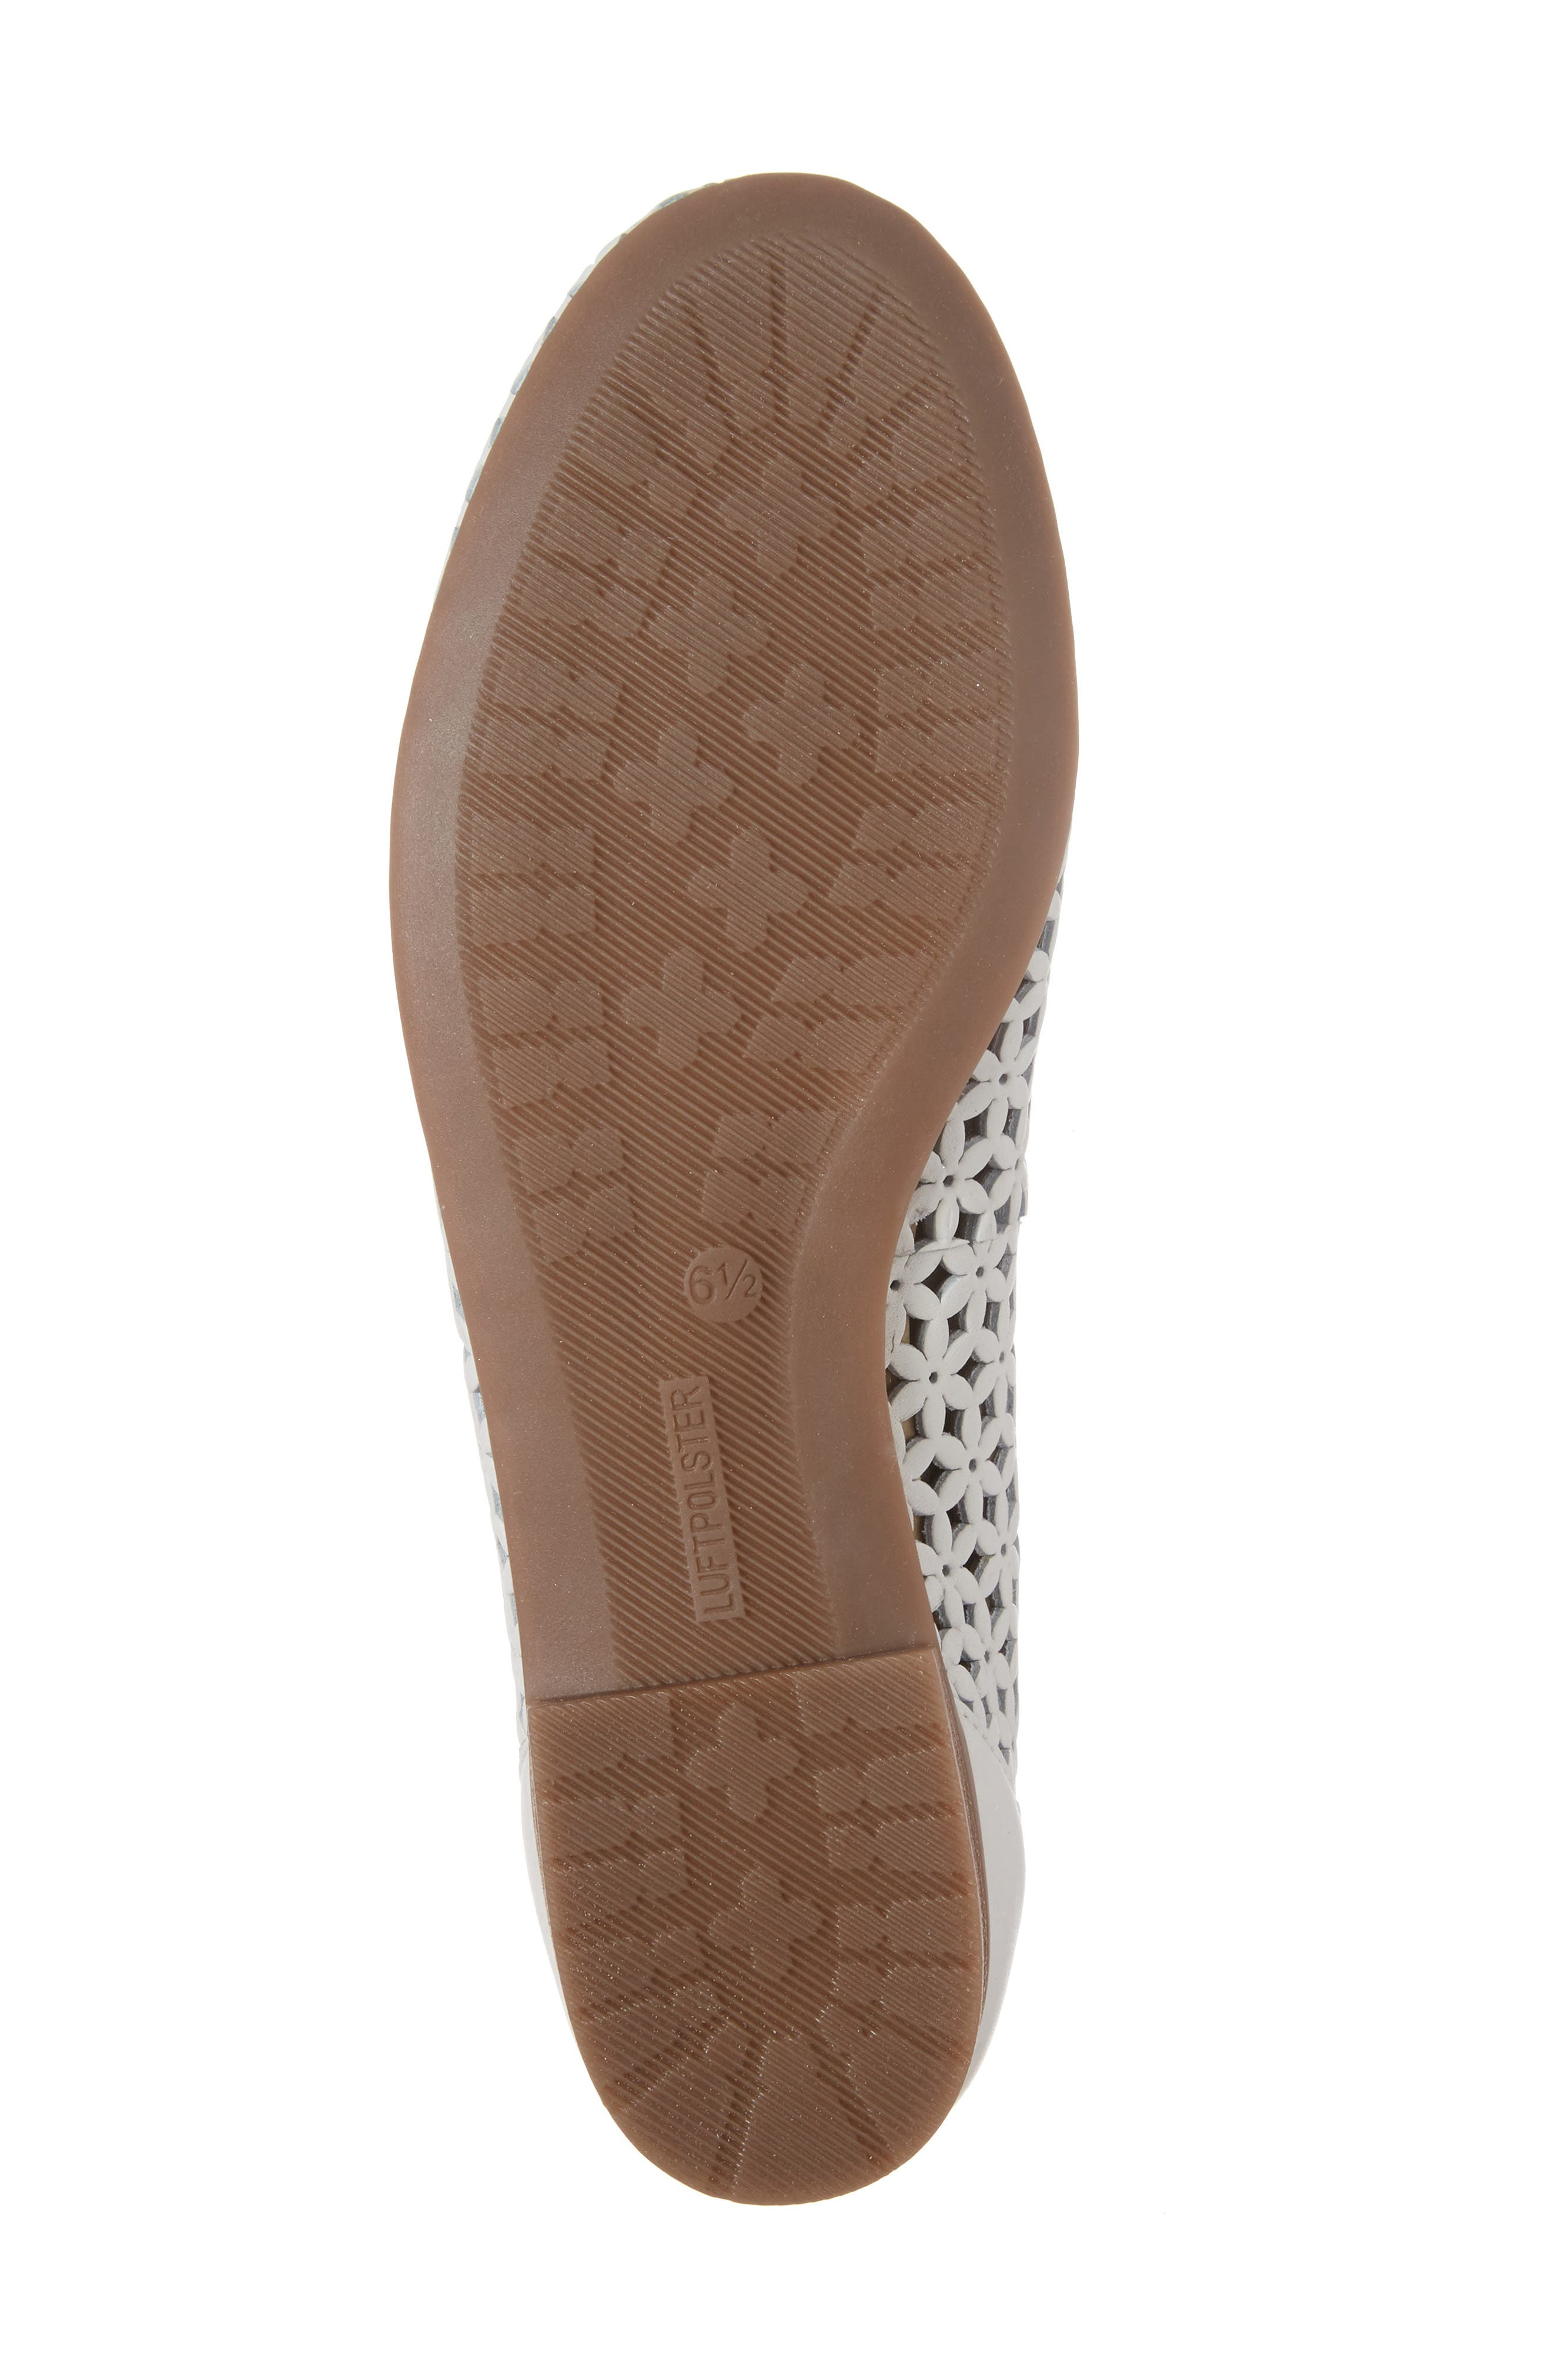 Stephanie Perforated Ballet Flat,                             Alternate thumbnail 6, color,                             101